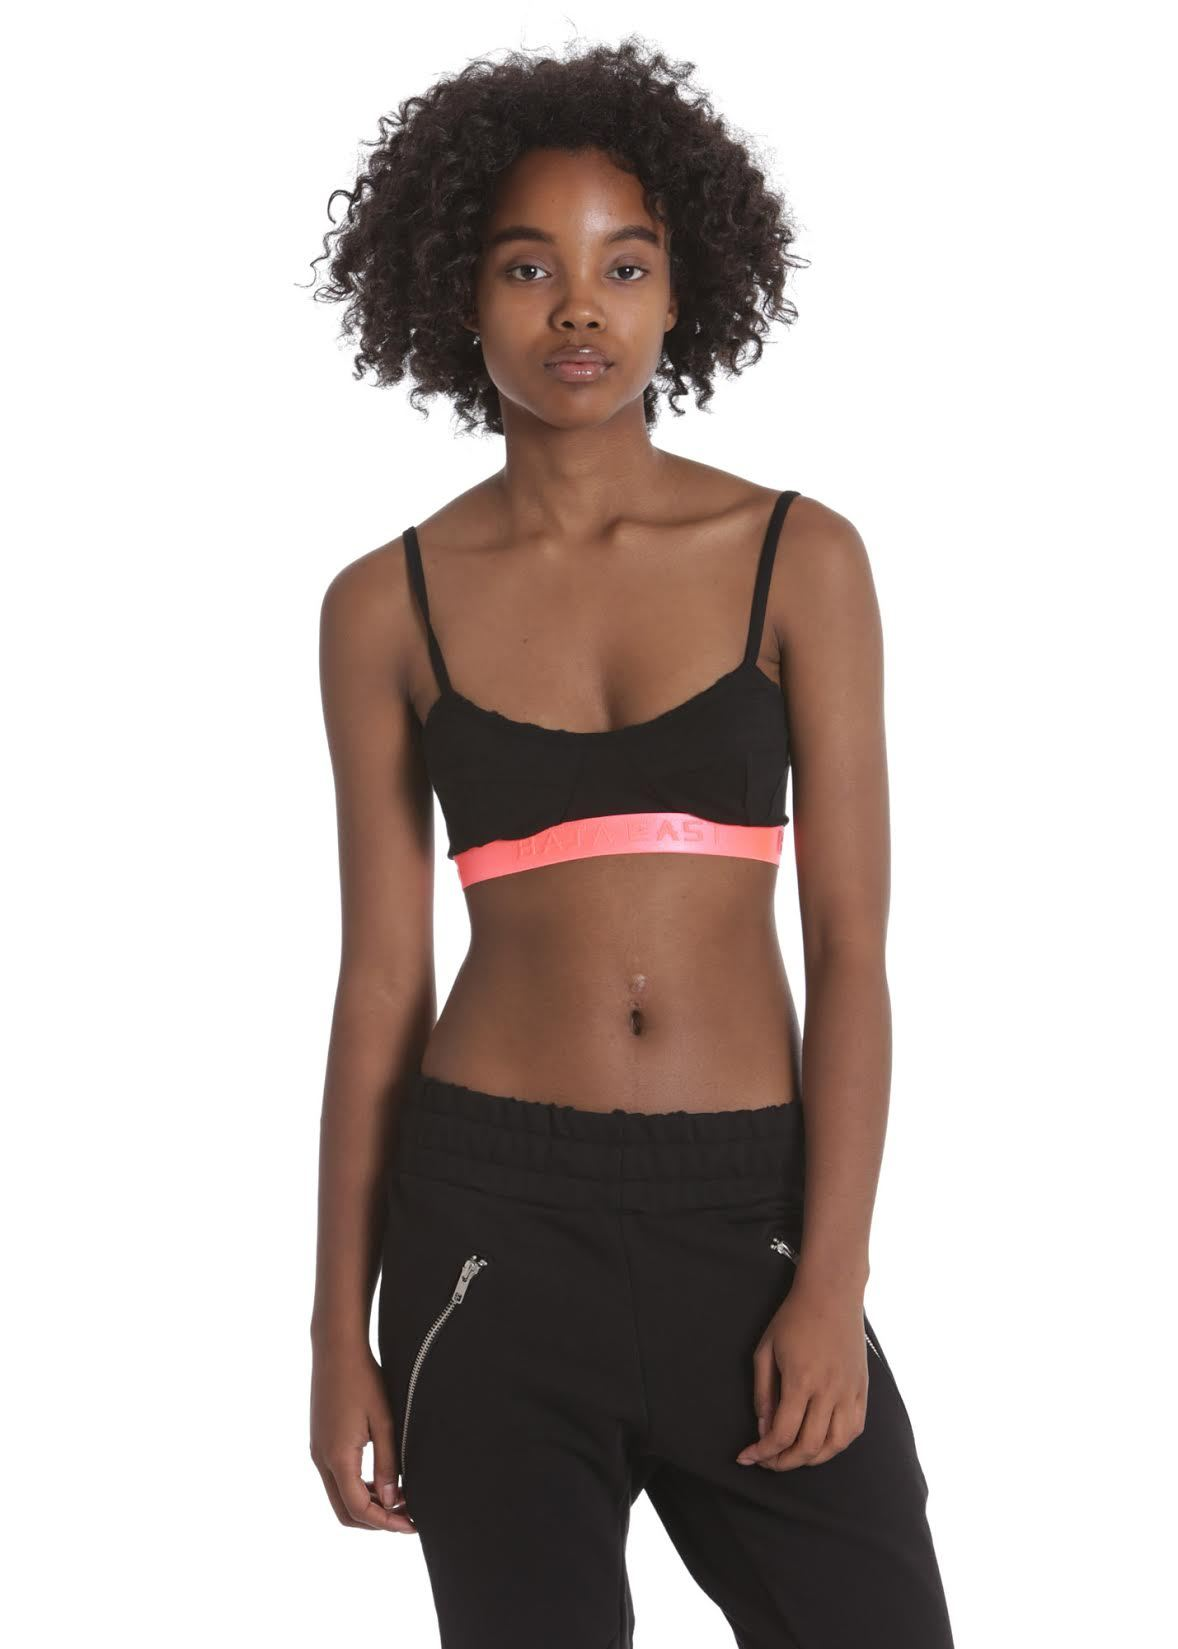 Baja East x Related Garments Women's Pink Bralette - Related Garments